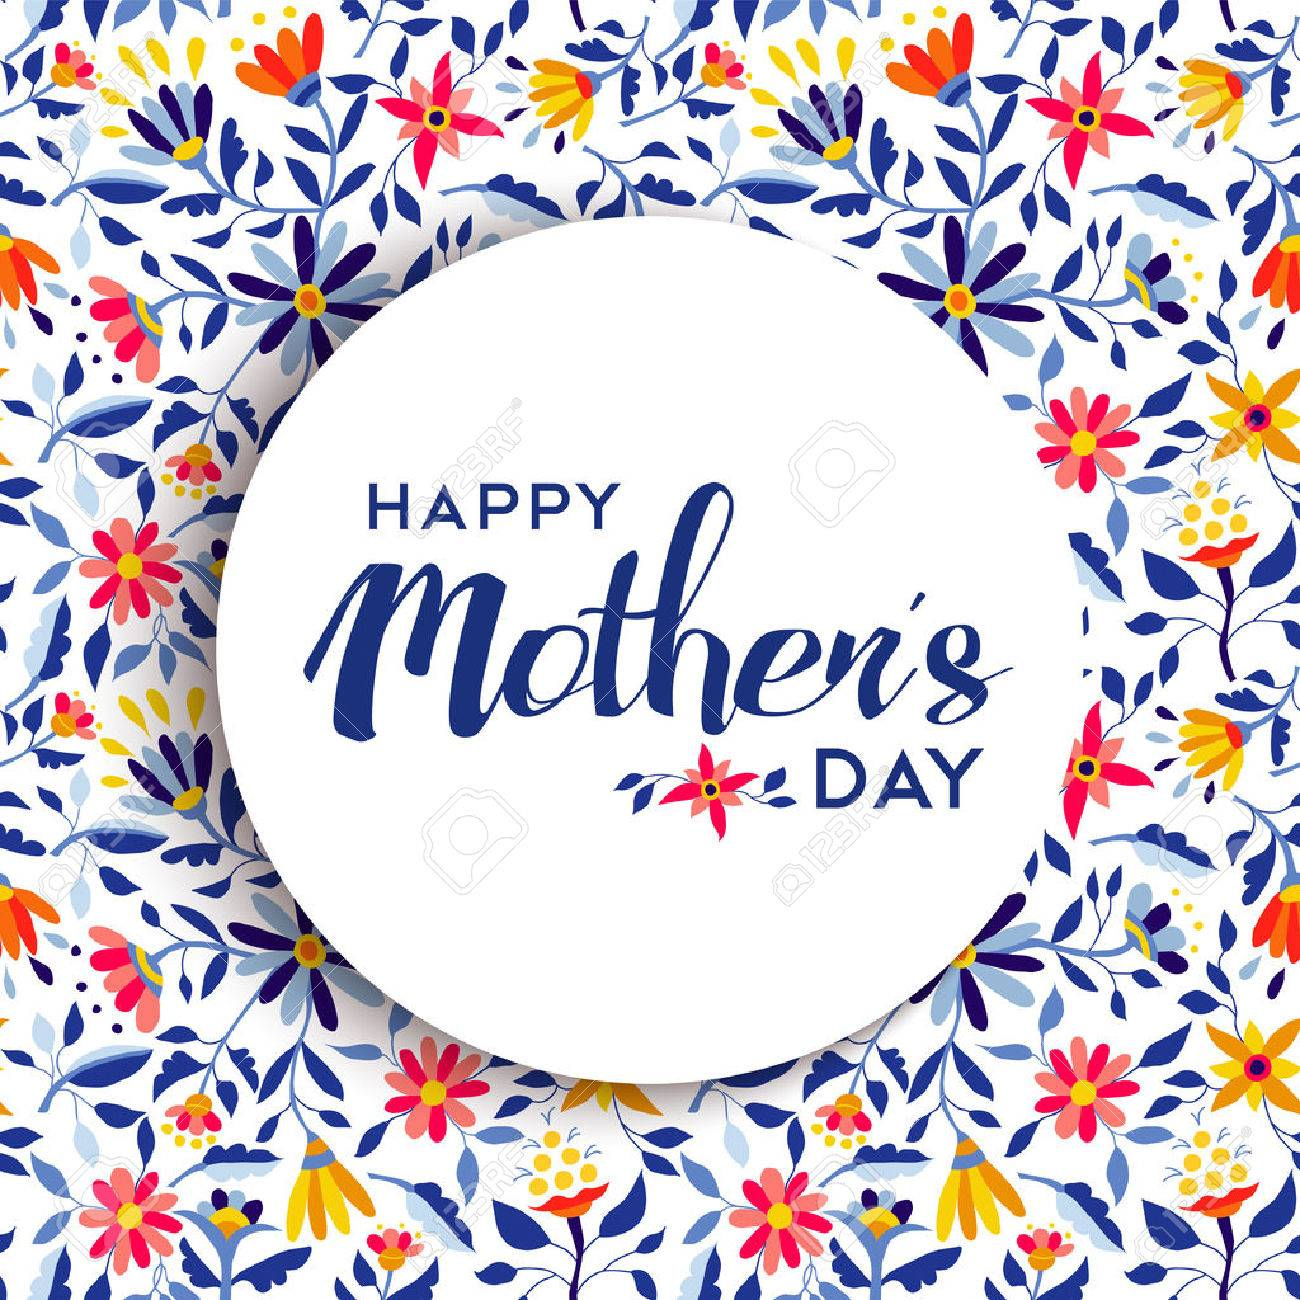 Happy mothers day quote badge design over spring flower background, ideal for special event greeting card. EPS10 vector. - 56045521